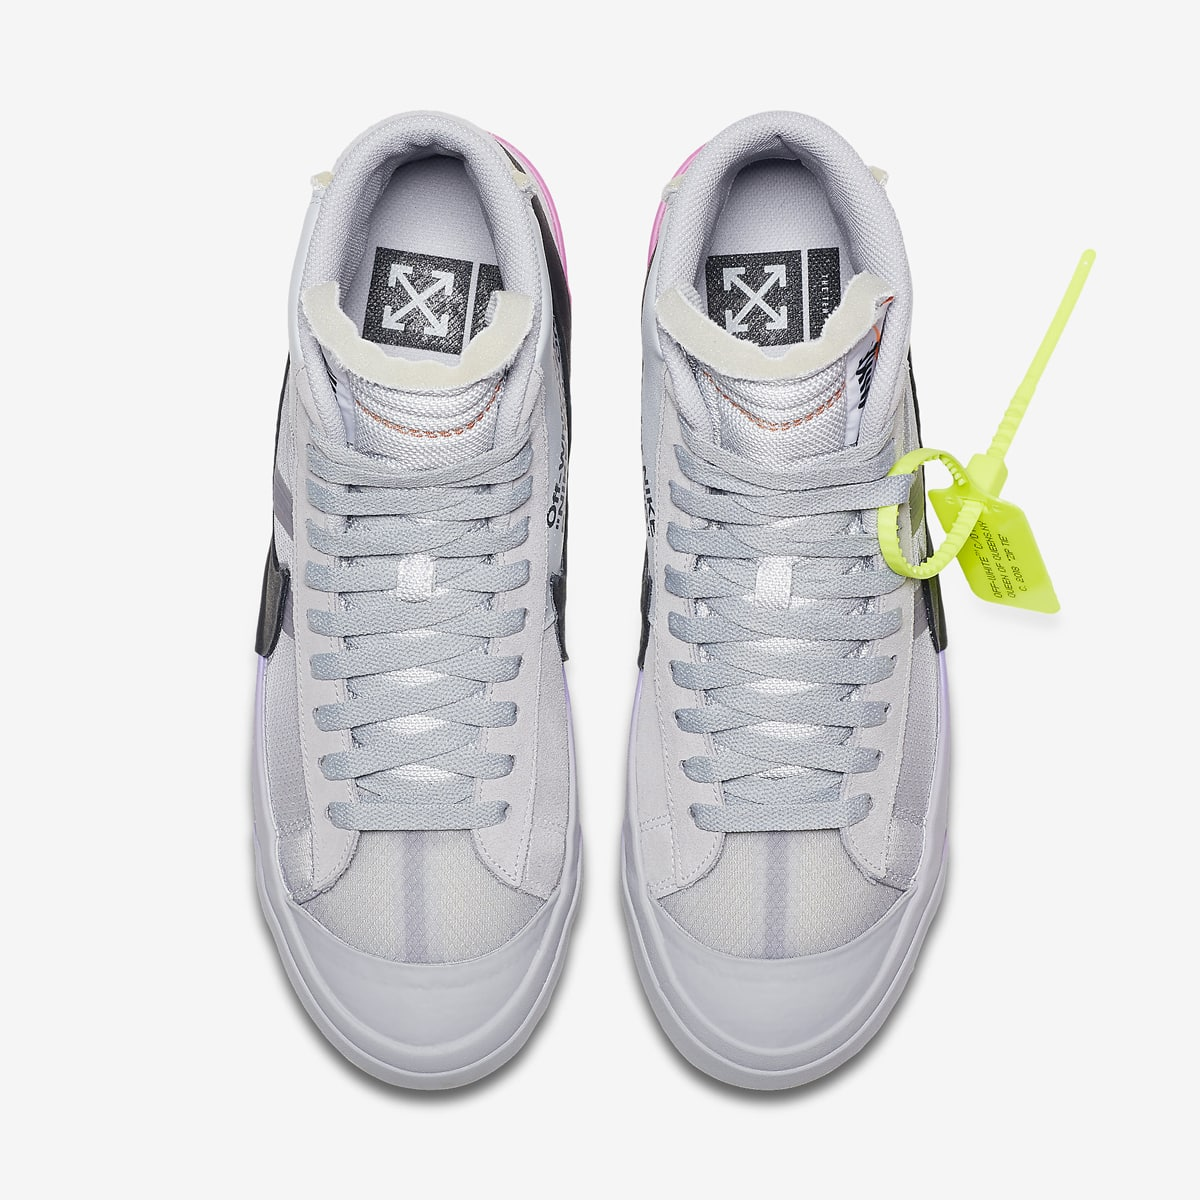 "Off-White x Nike Blazer Mid ""Queen"". Color  Wolf Grey Cool Grey-Pure  Platinum-Volt Style Code  AA3832-002. Restock Date (EU)  March Price   130 7696d3385"